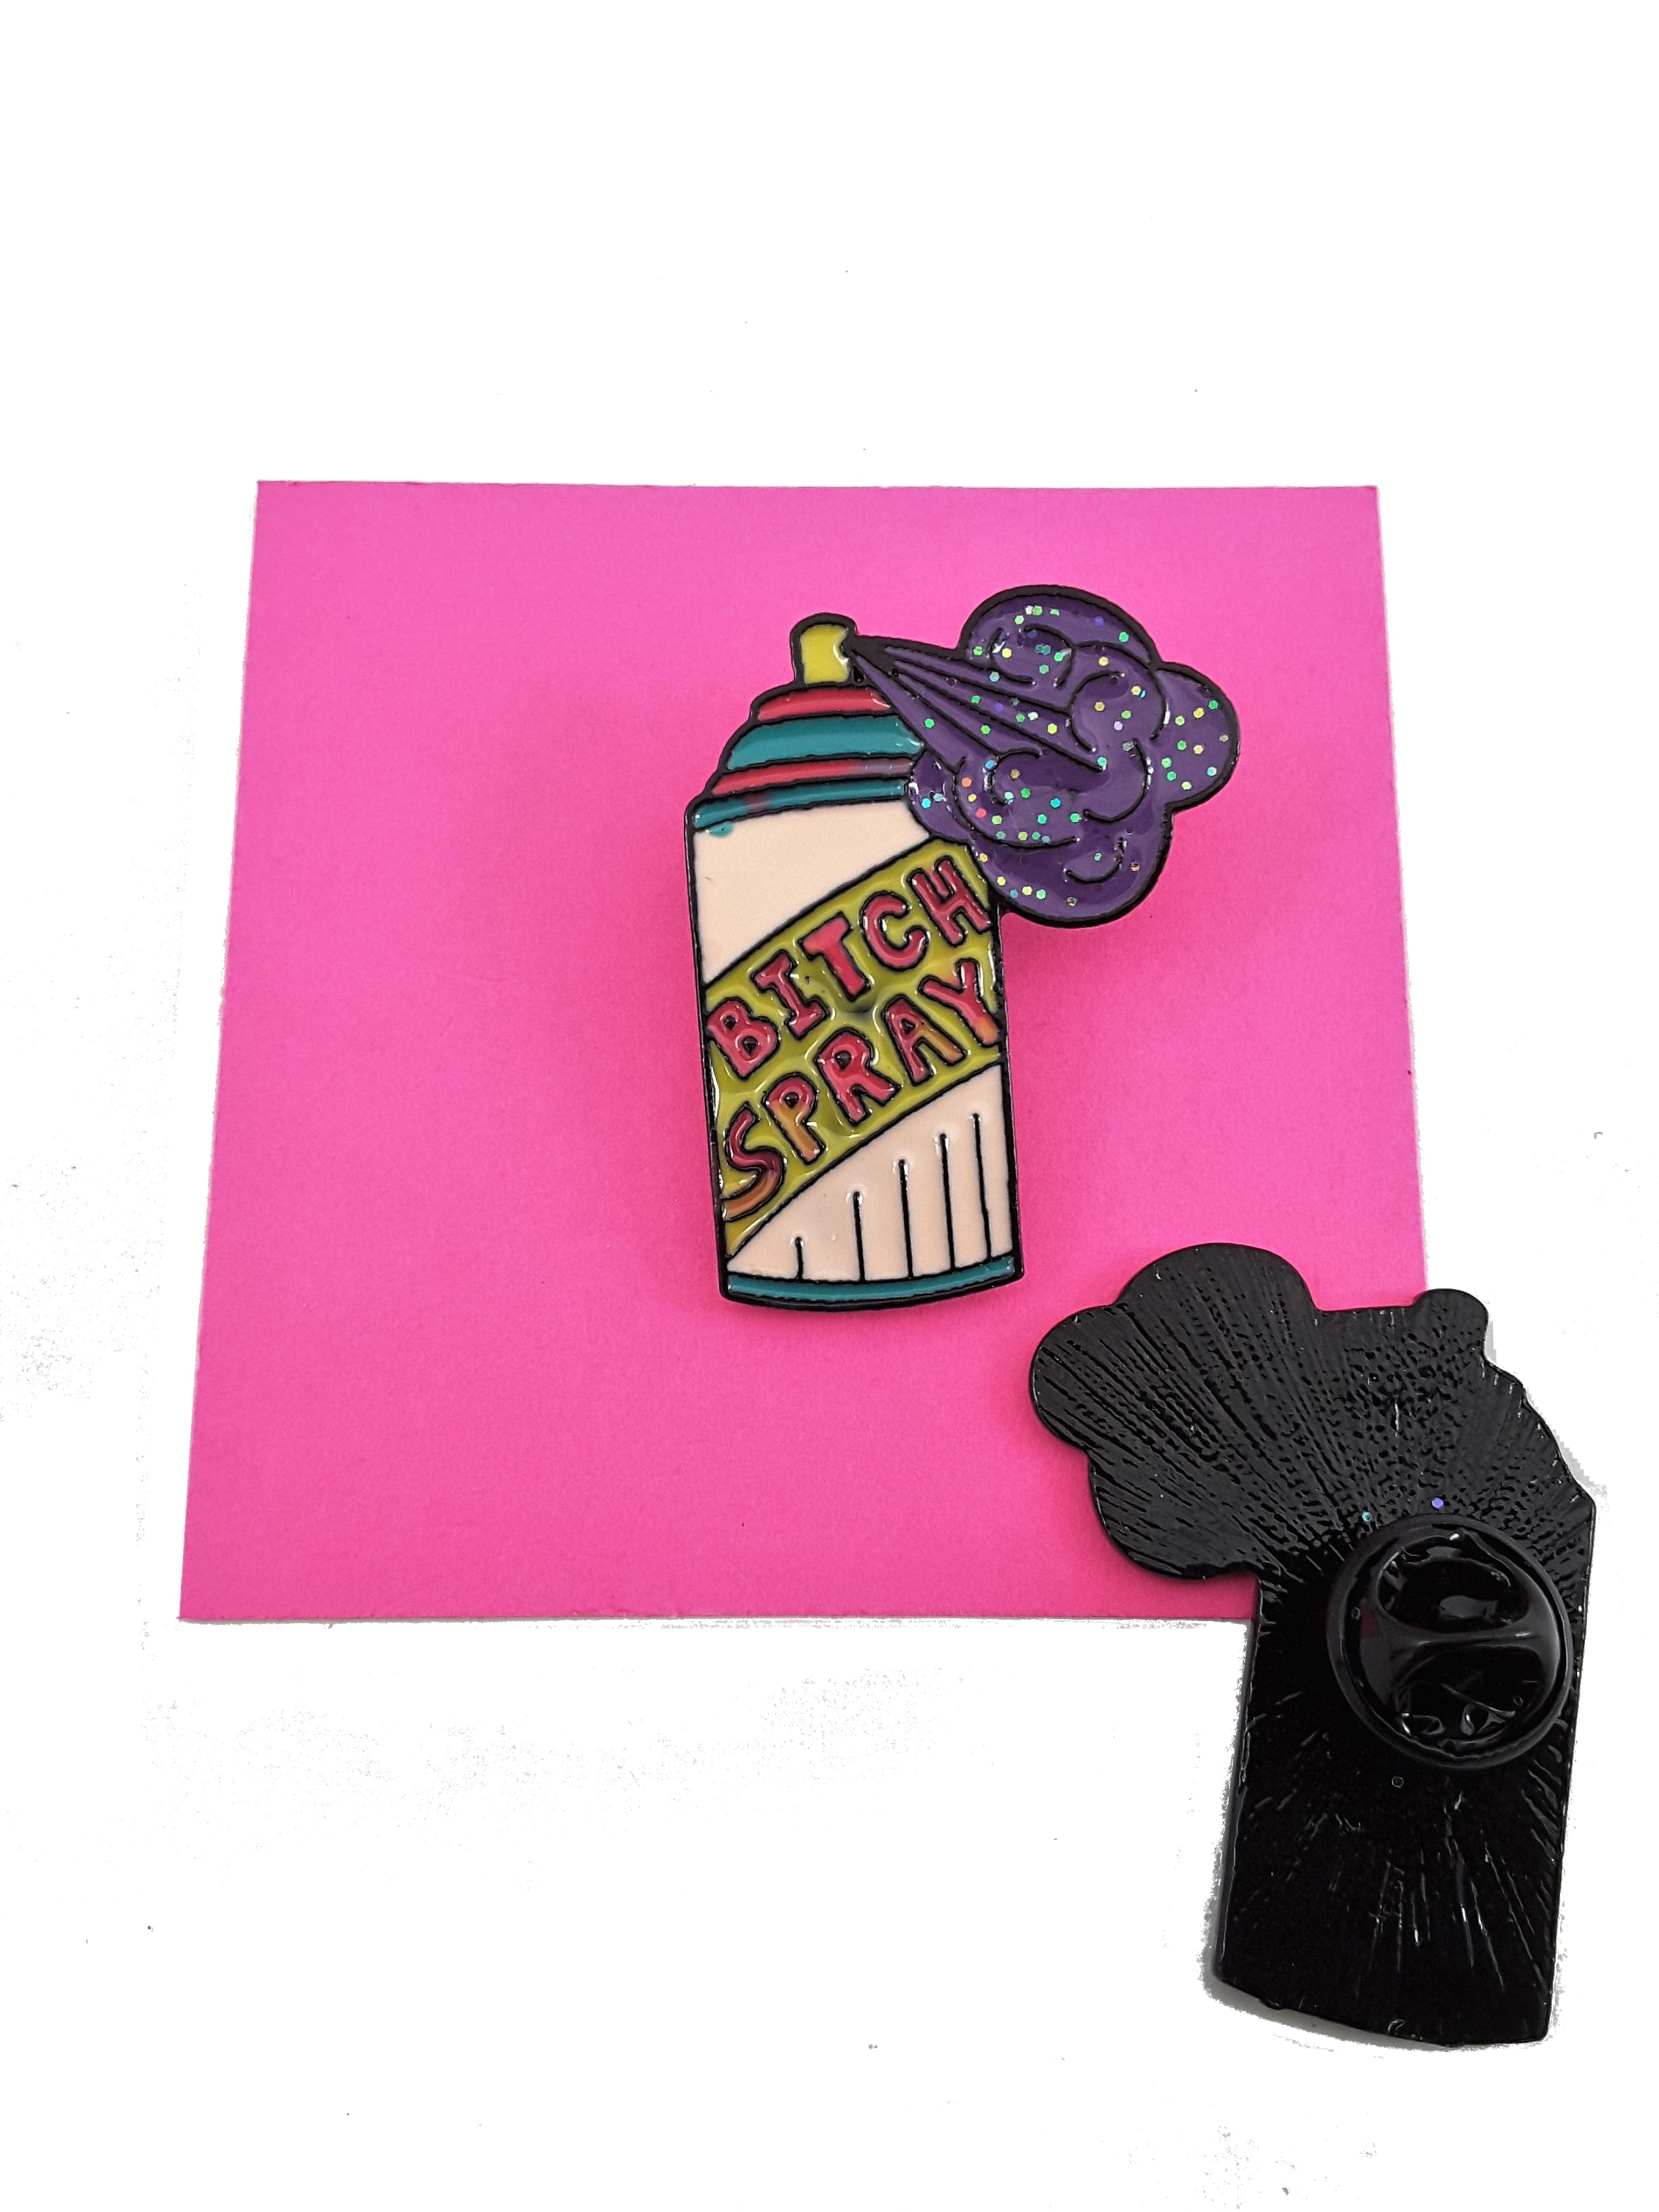 Bitch Aerosol Spray Can Enamel Pin -  Shipping included! - TheLastWordBish.com